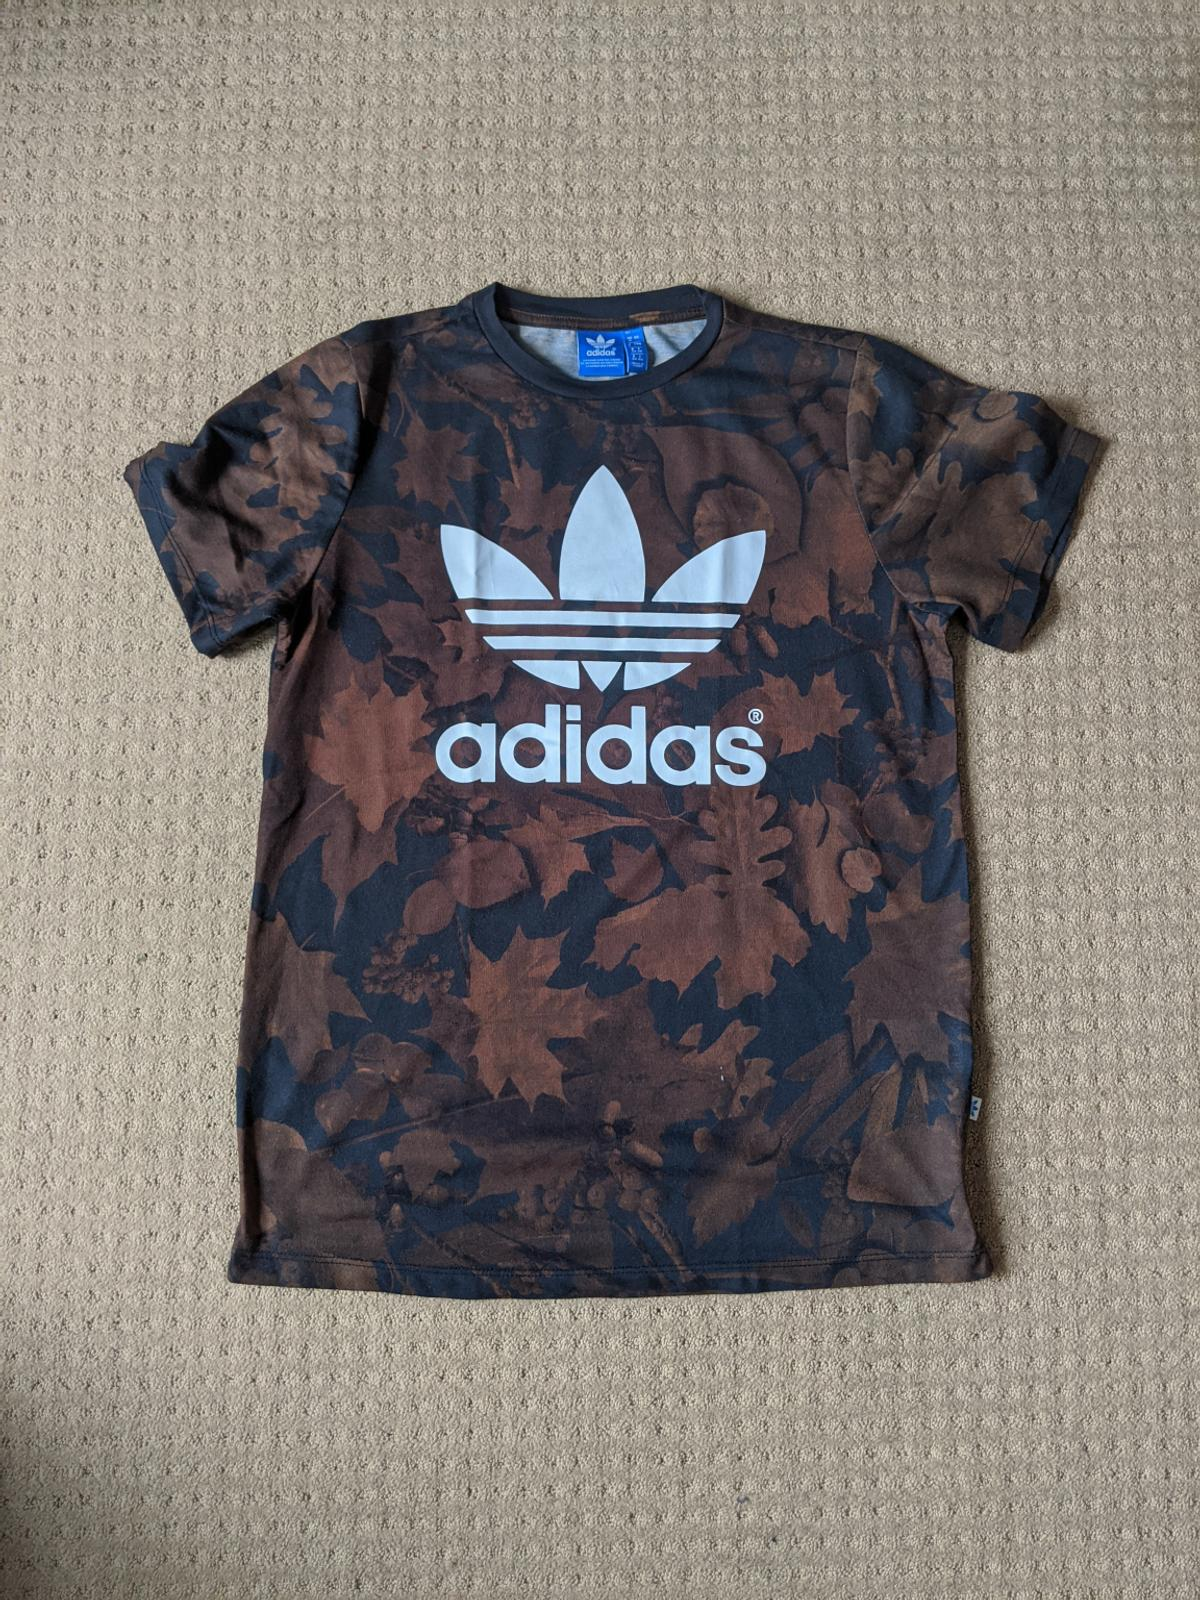 Chispa  chispear Decimal Hecho para recordar  Adidas t-shirt in SW2 Lambeth for £12.00 for sale   Shpock